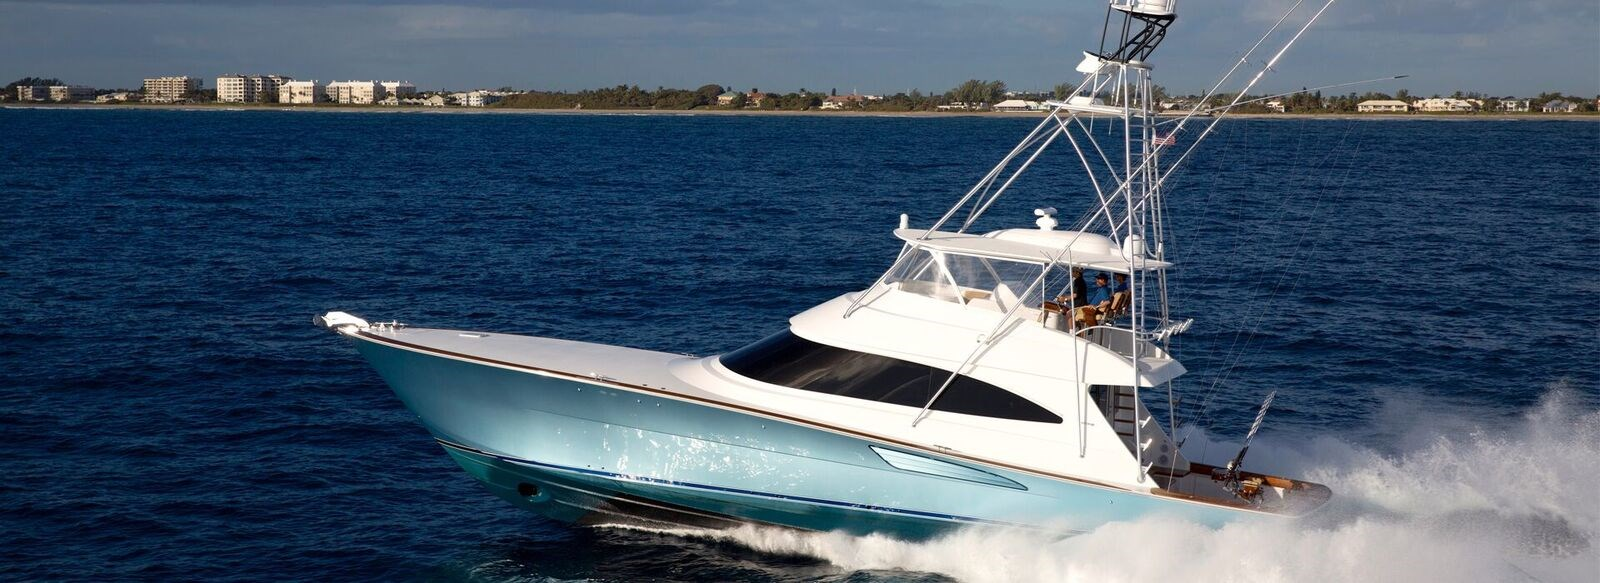 New Viking 72 Convertible Yachts For Sale